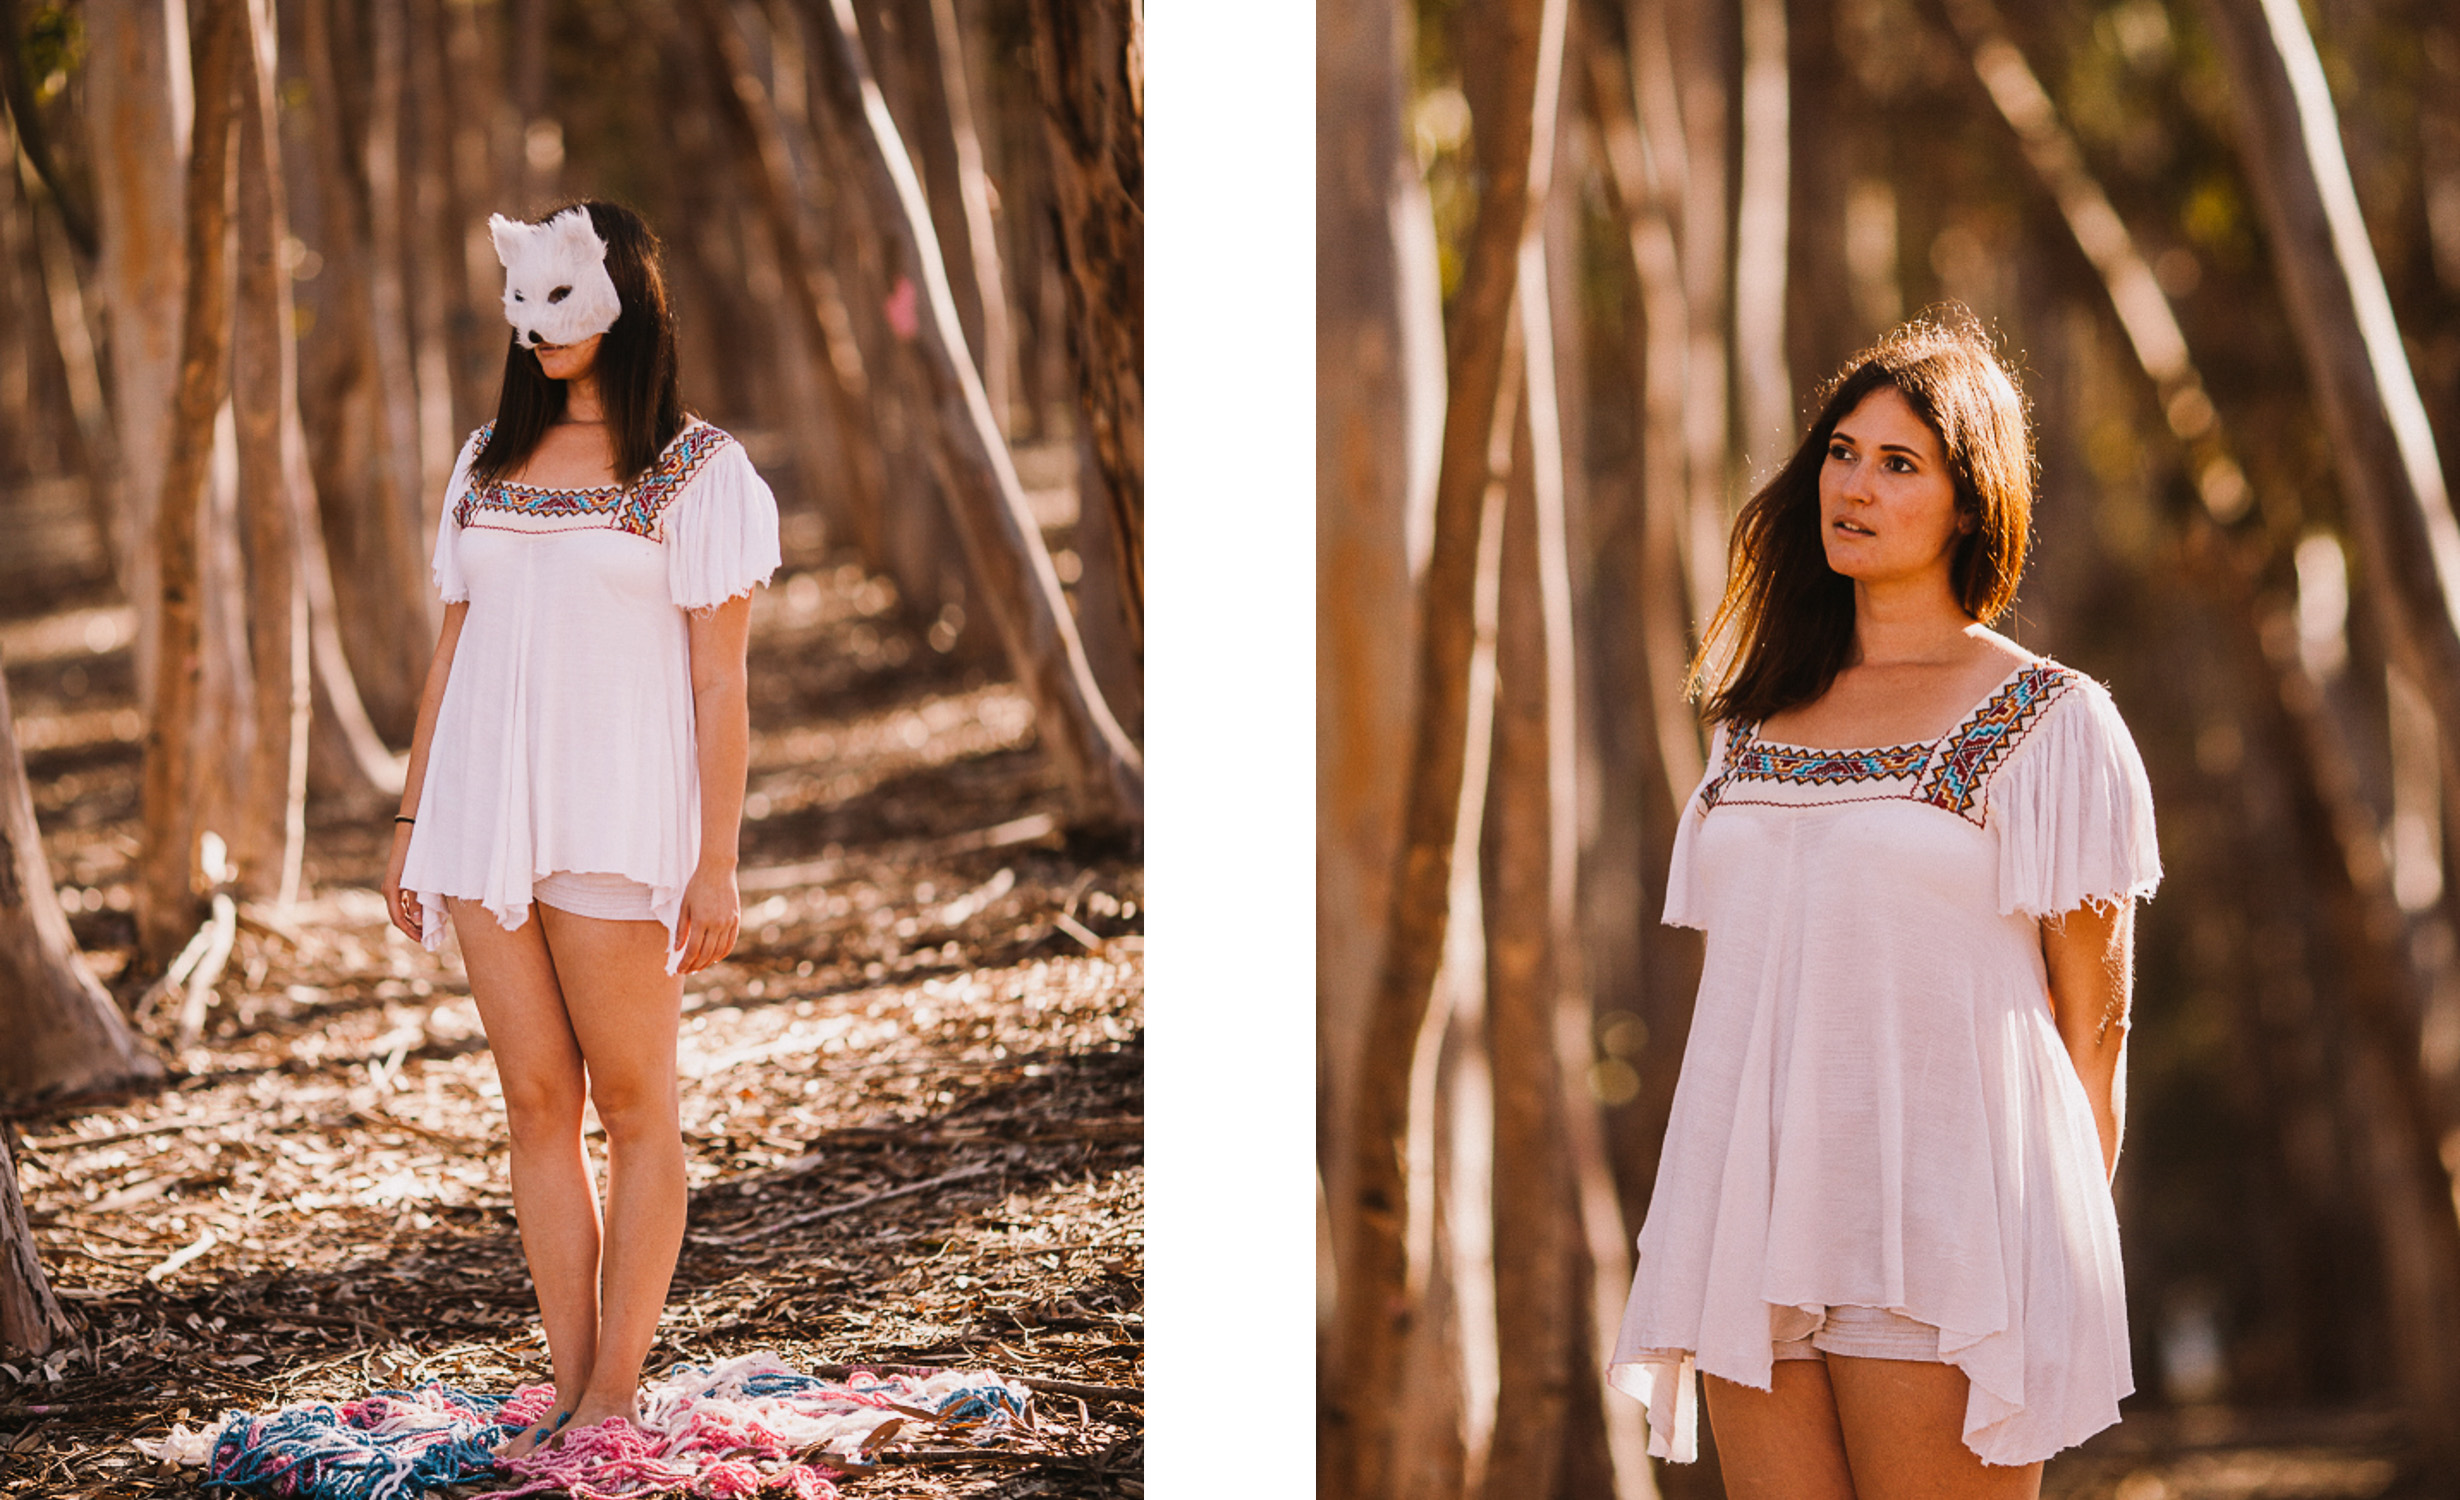 san diego wedding   photographer   collage of woman in white with mask on